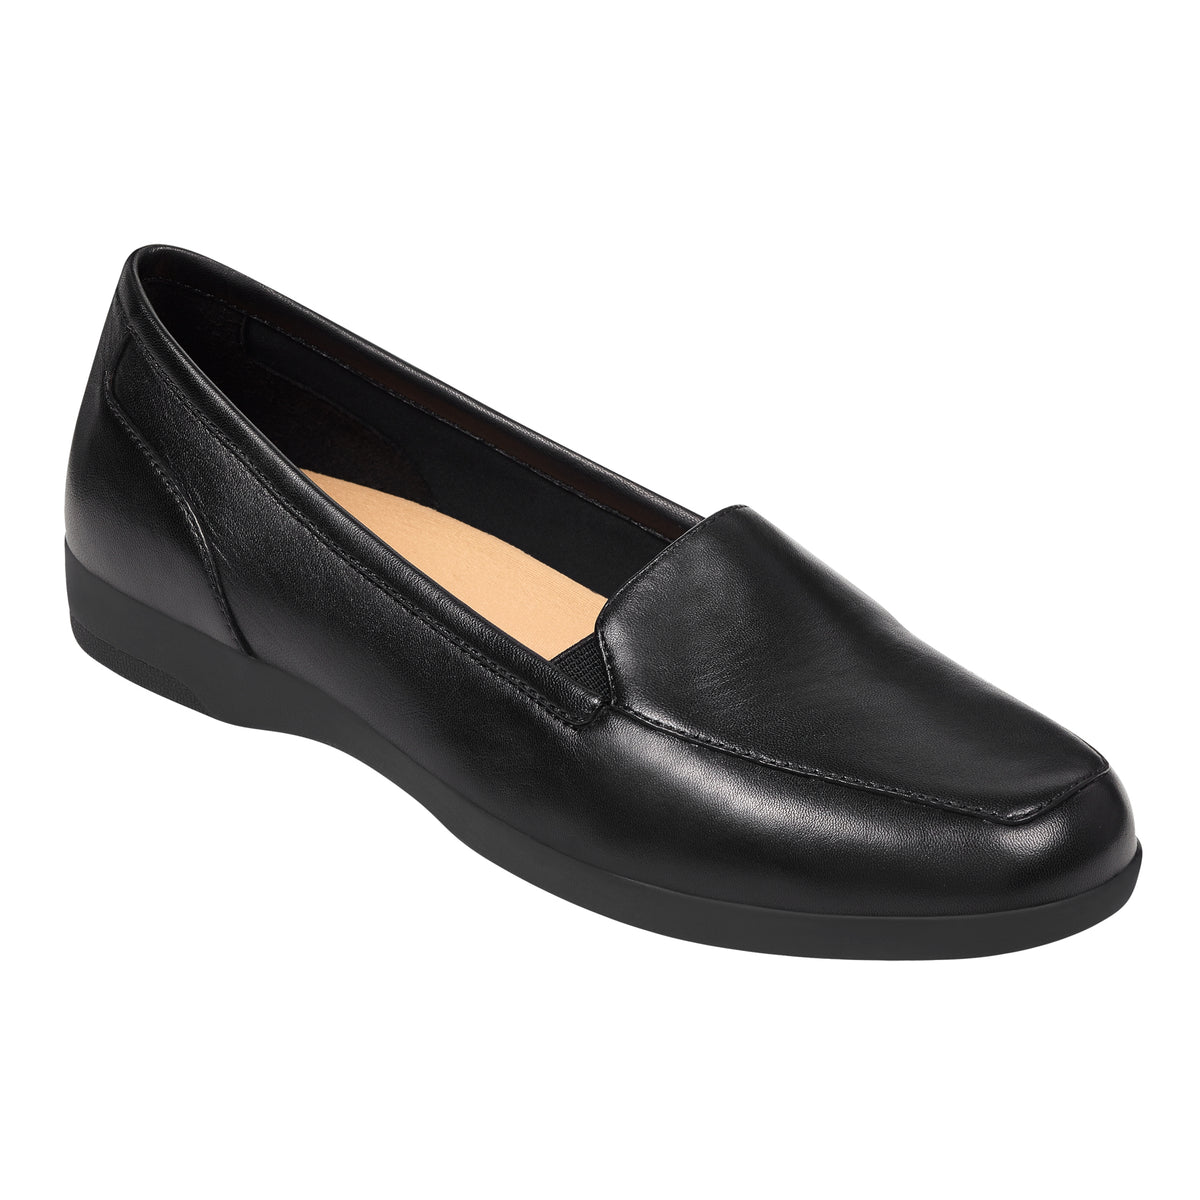 devitt-casual-flats-in-black-leather